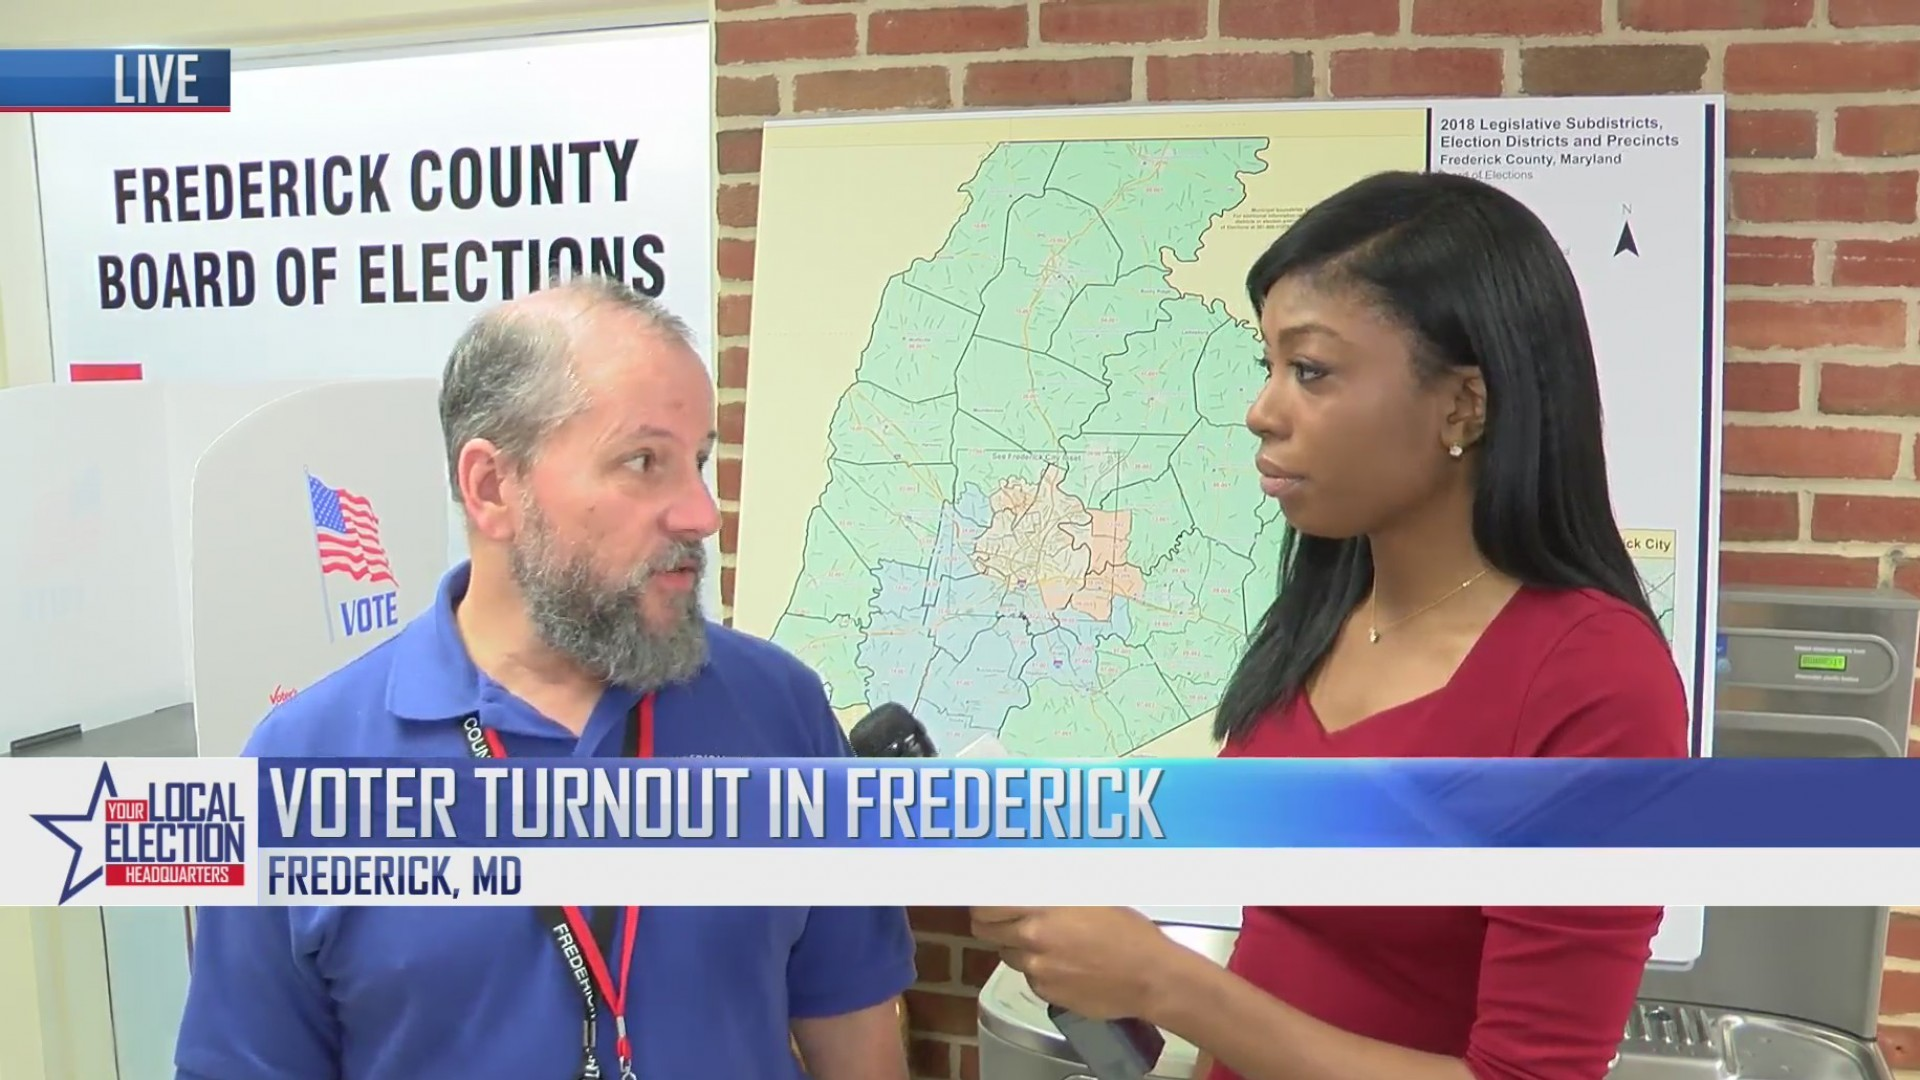 Frederick_Turnout_0_20181106173932